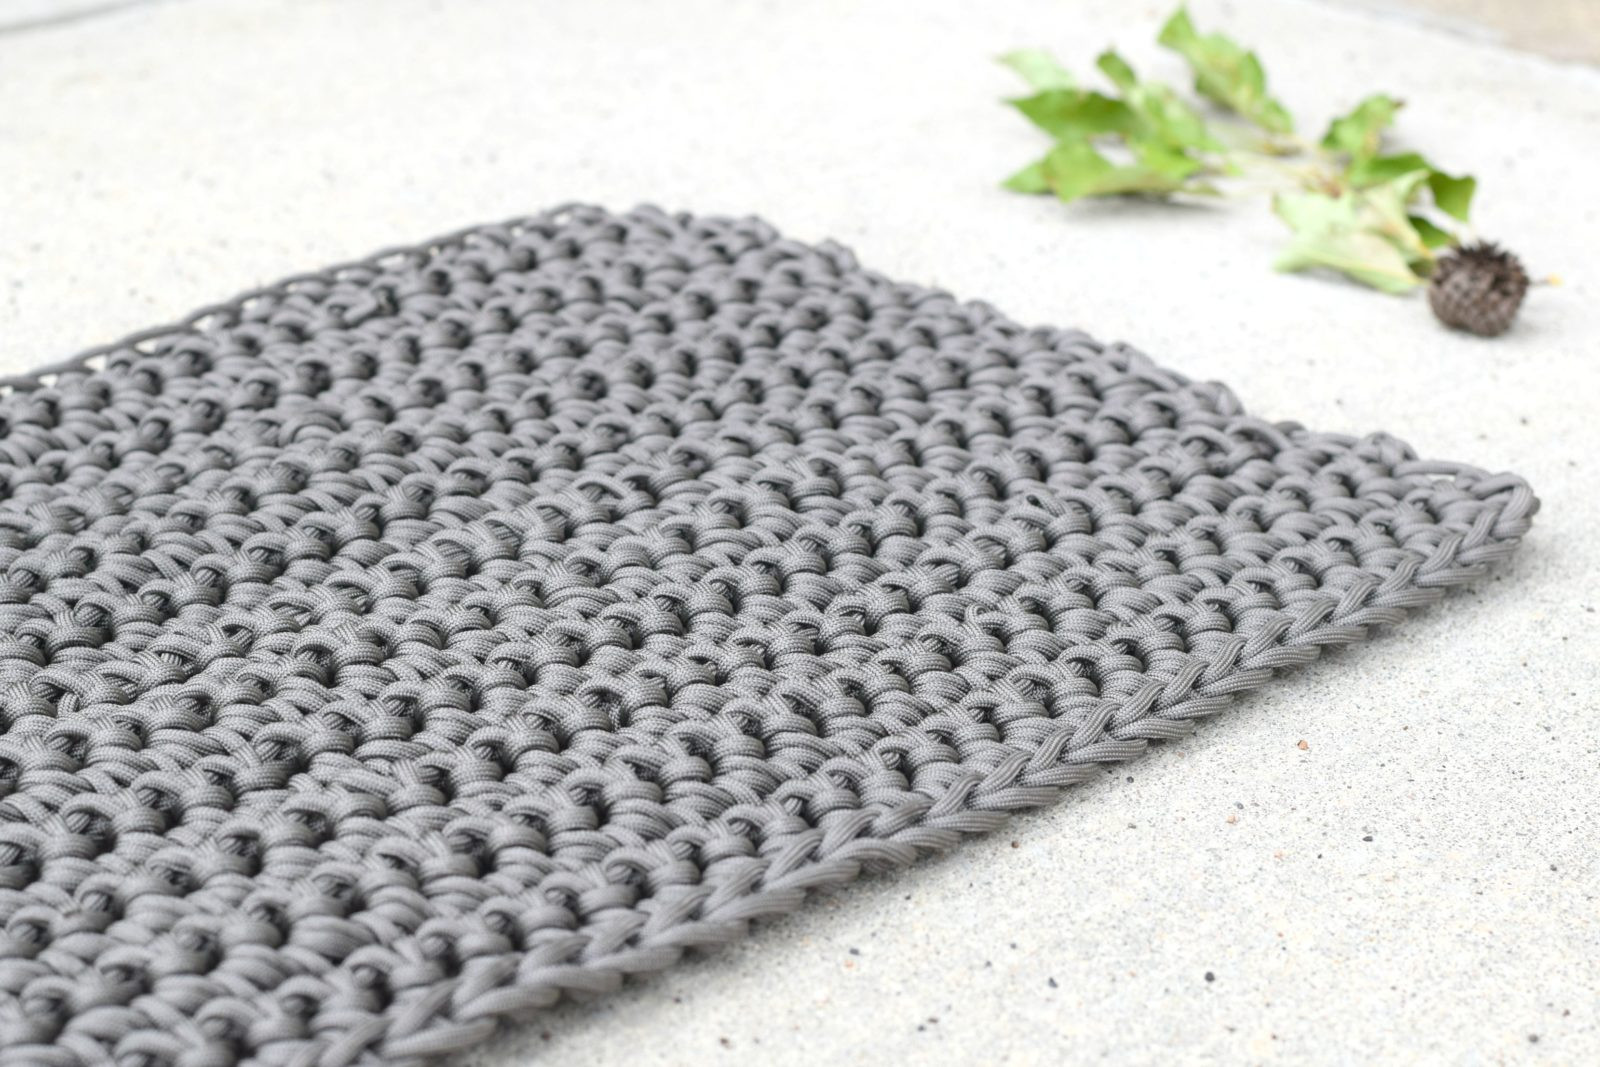 Crochet Rug Best Of How to Crochet An Outdoor Rug for Beginners – Mama In A Of Top 44 Photos Crochet Rug